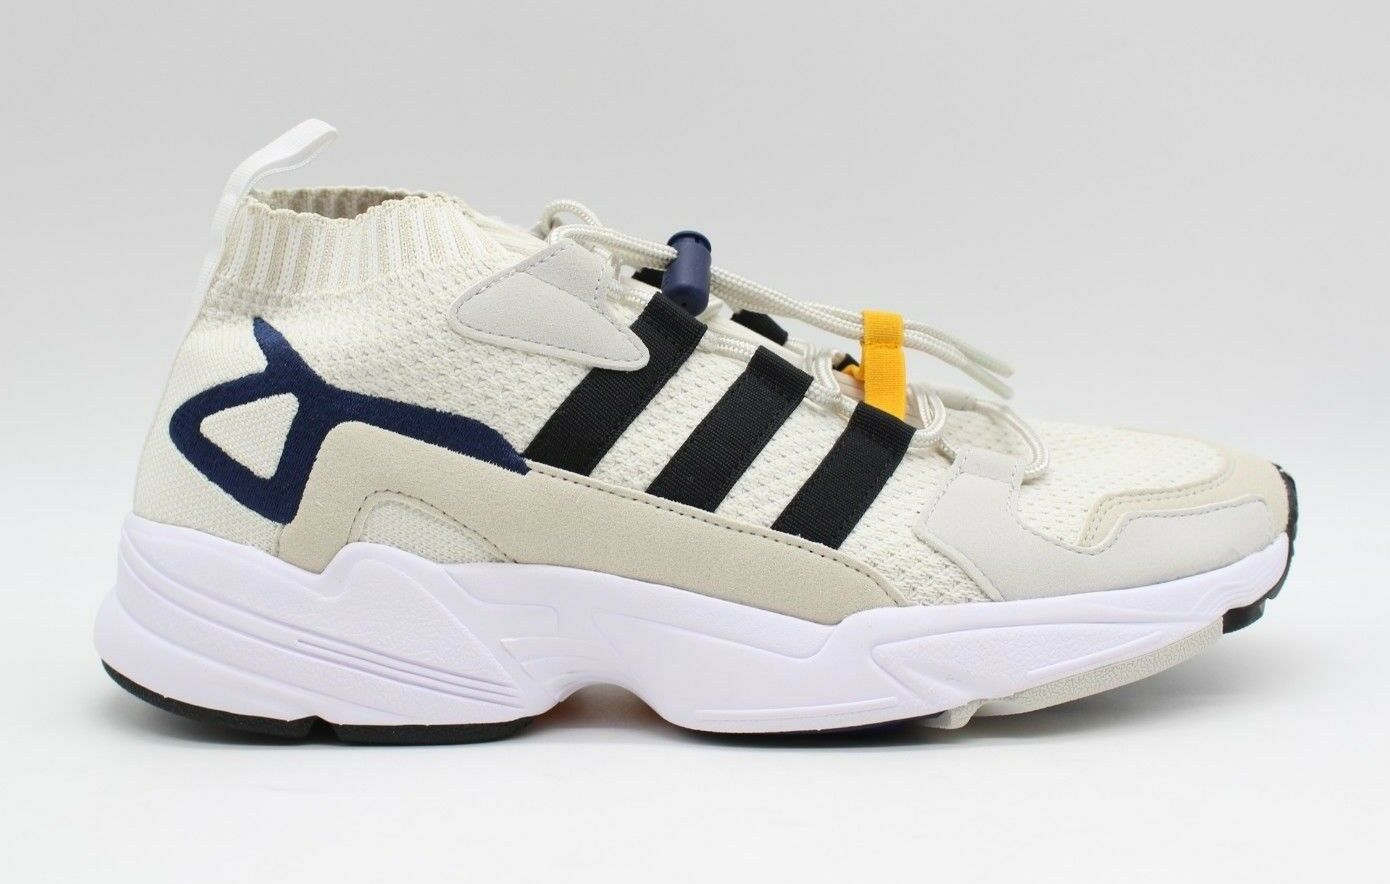 Adidas Consortium Falcon Workshop Pack Cream Black Running shoes BC0695 - NEW